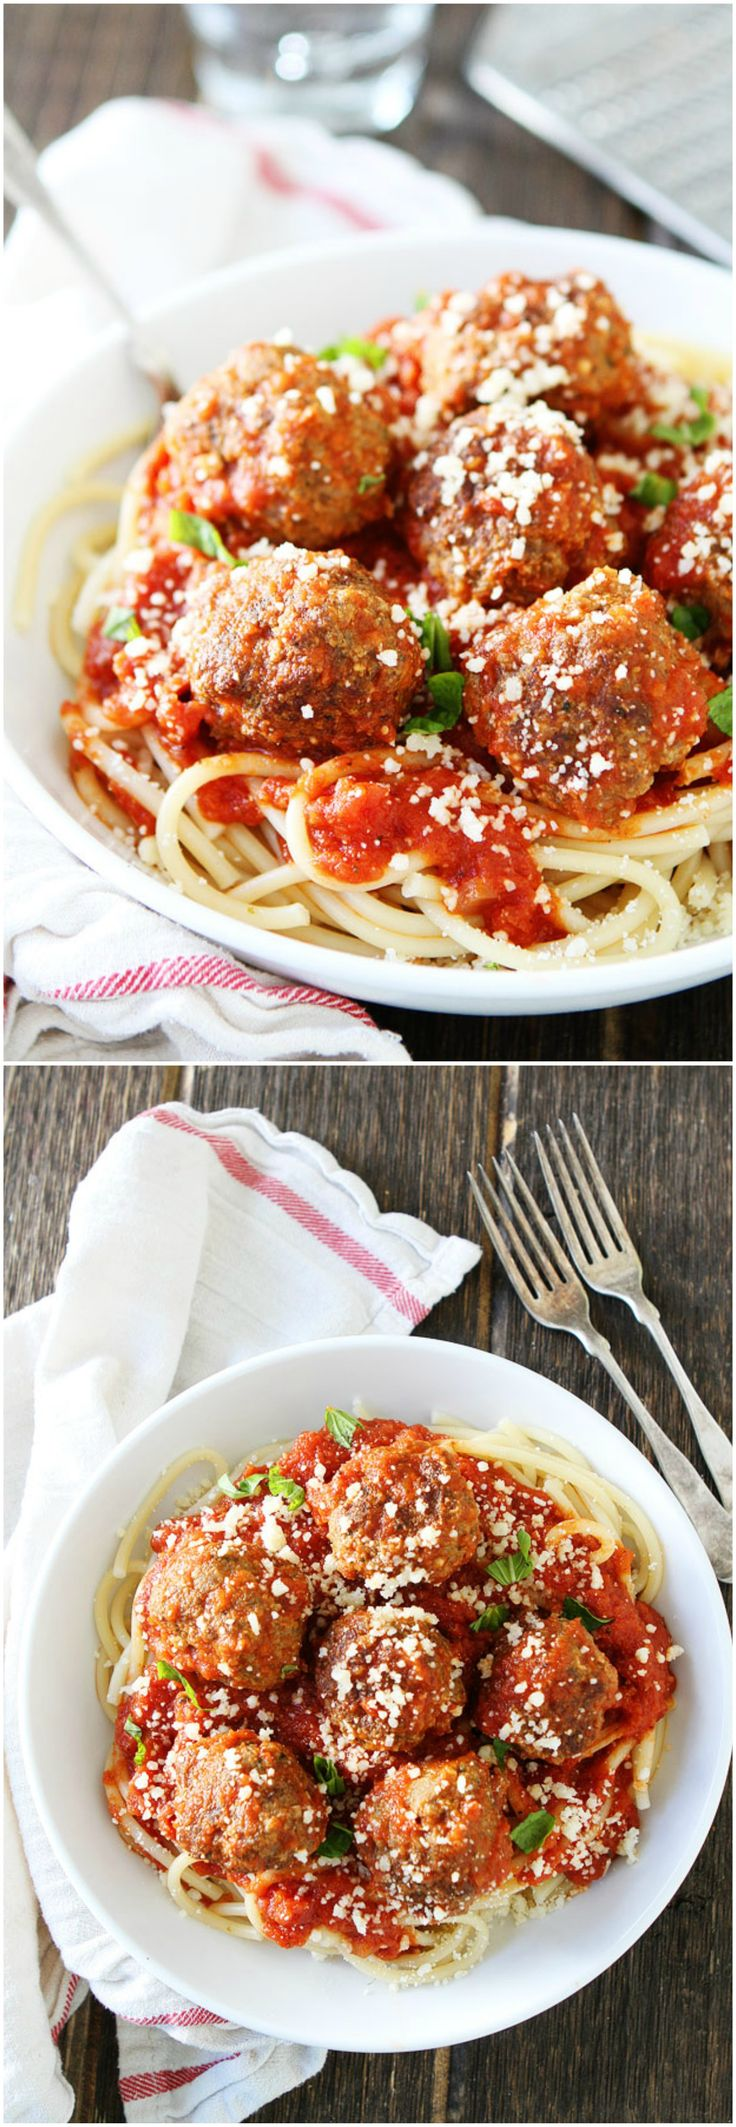 The BEST Spaghetti and Meatballs Recipe on twopeasandtheirpod.com This meal is sure to be a family favorite and they are easy to make!